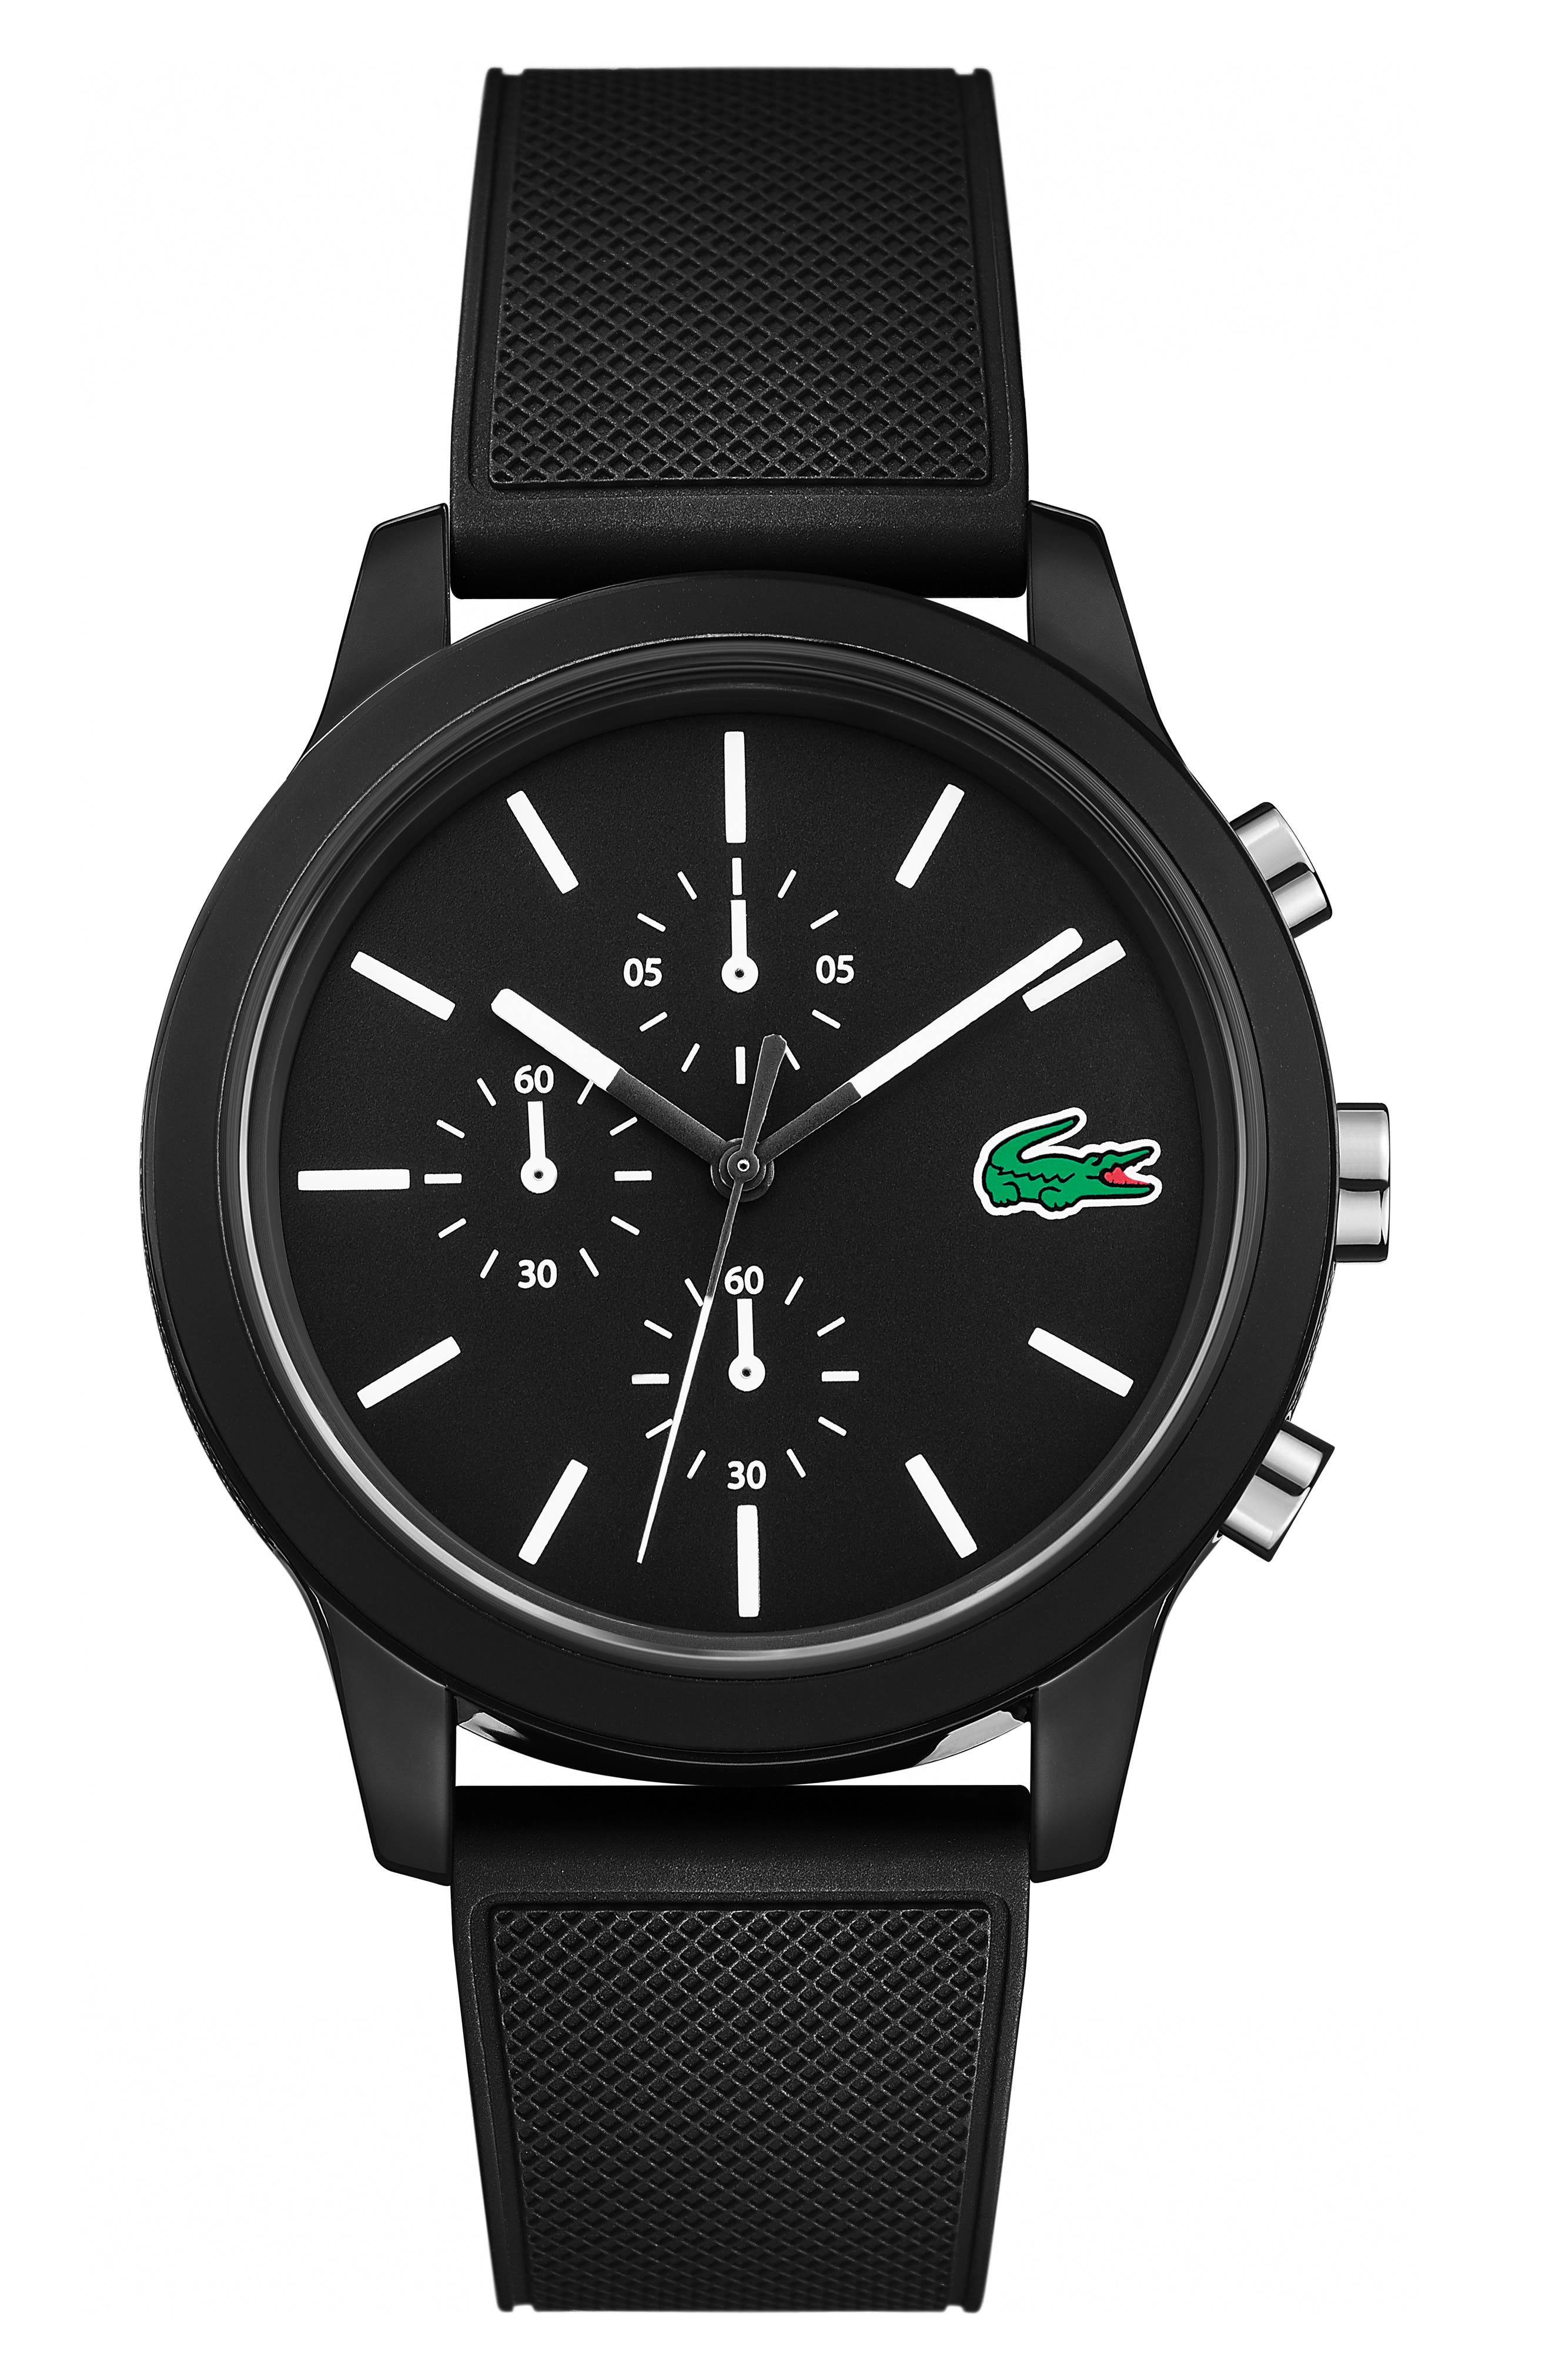 LACOSTE, 12.12 Chronograph Silicone Band Watch, 44mm, Main thumbnail 1, color, BLACK